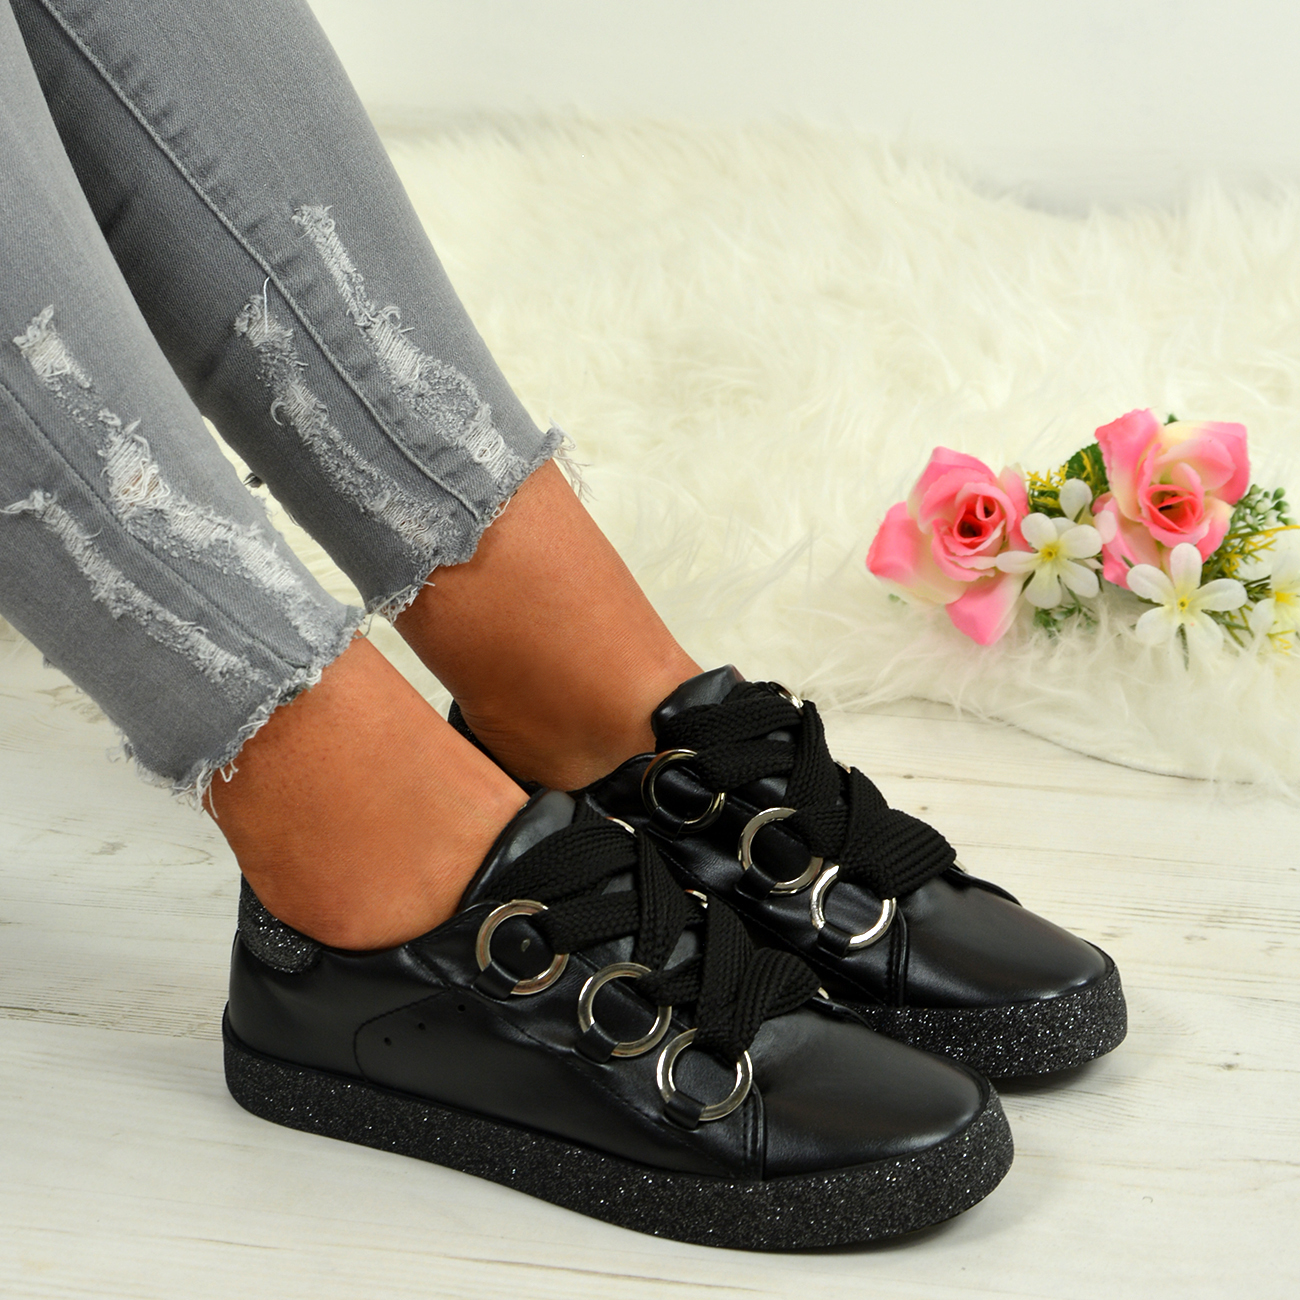 LADIES-WOMENS-GLITTER-SNEAKERS-SPARKLE-TRAINERS-LACE-UP-PLIMSOLL-PUMPS-SHOES thumbnail 7